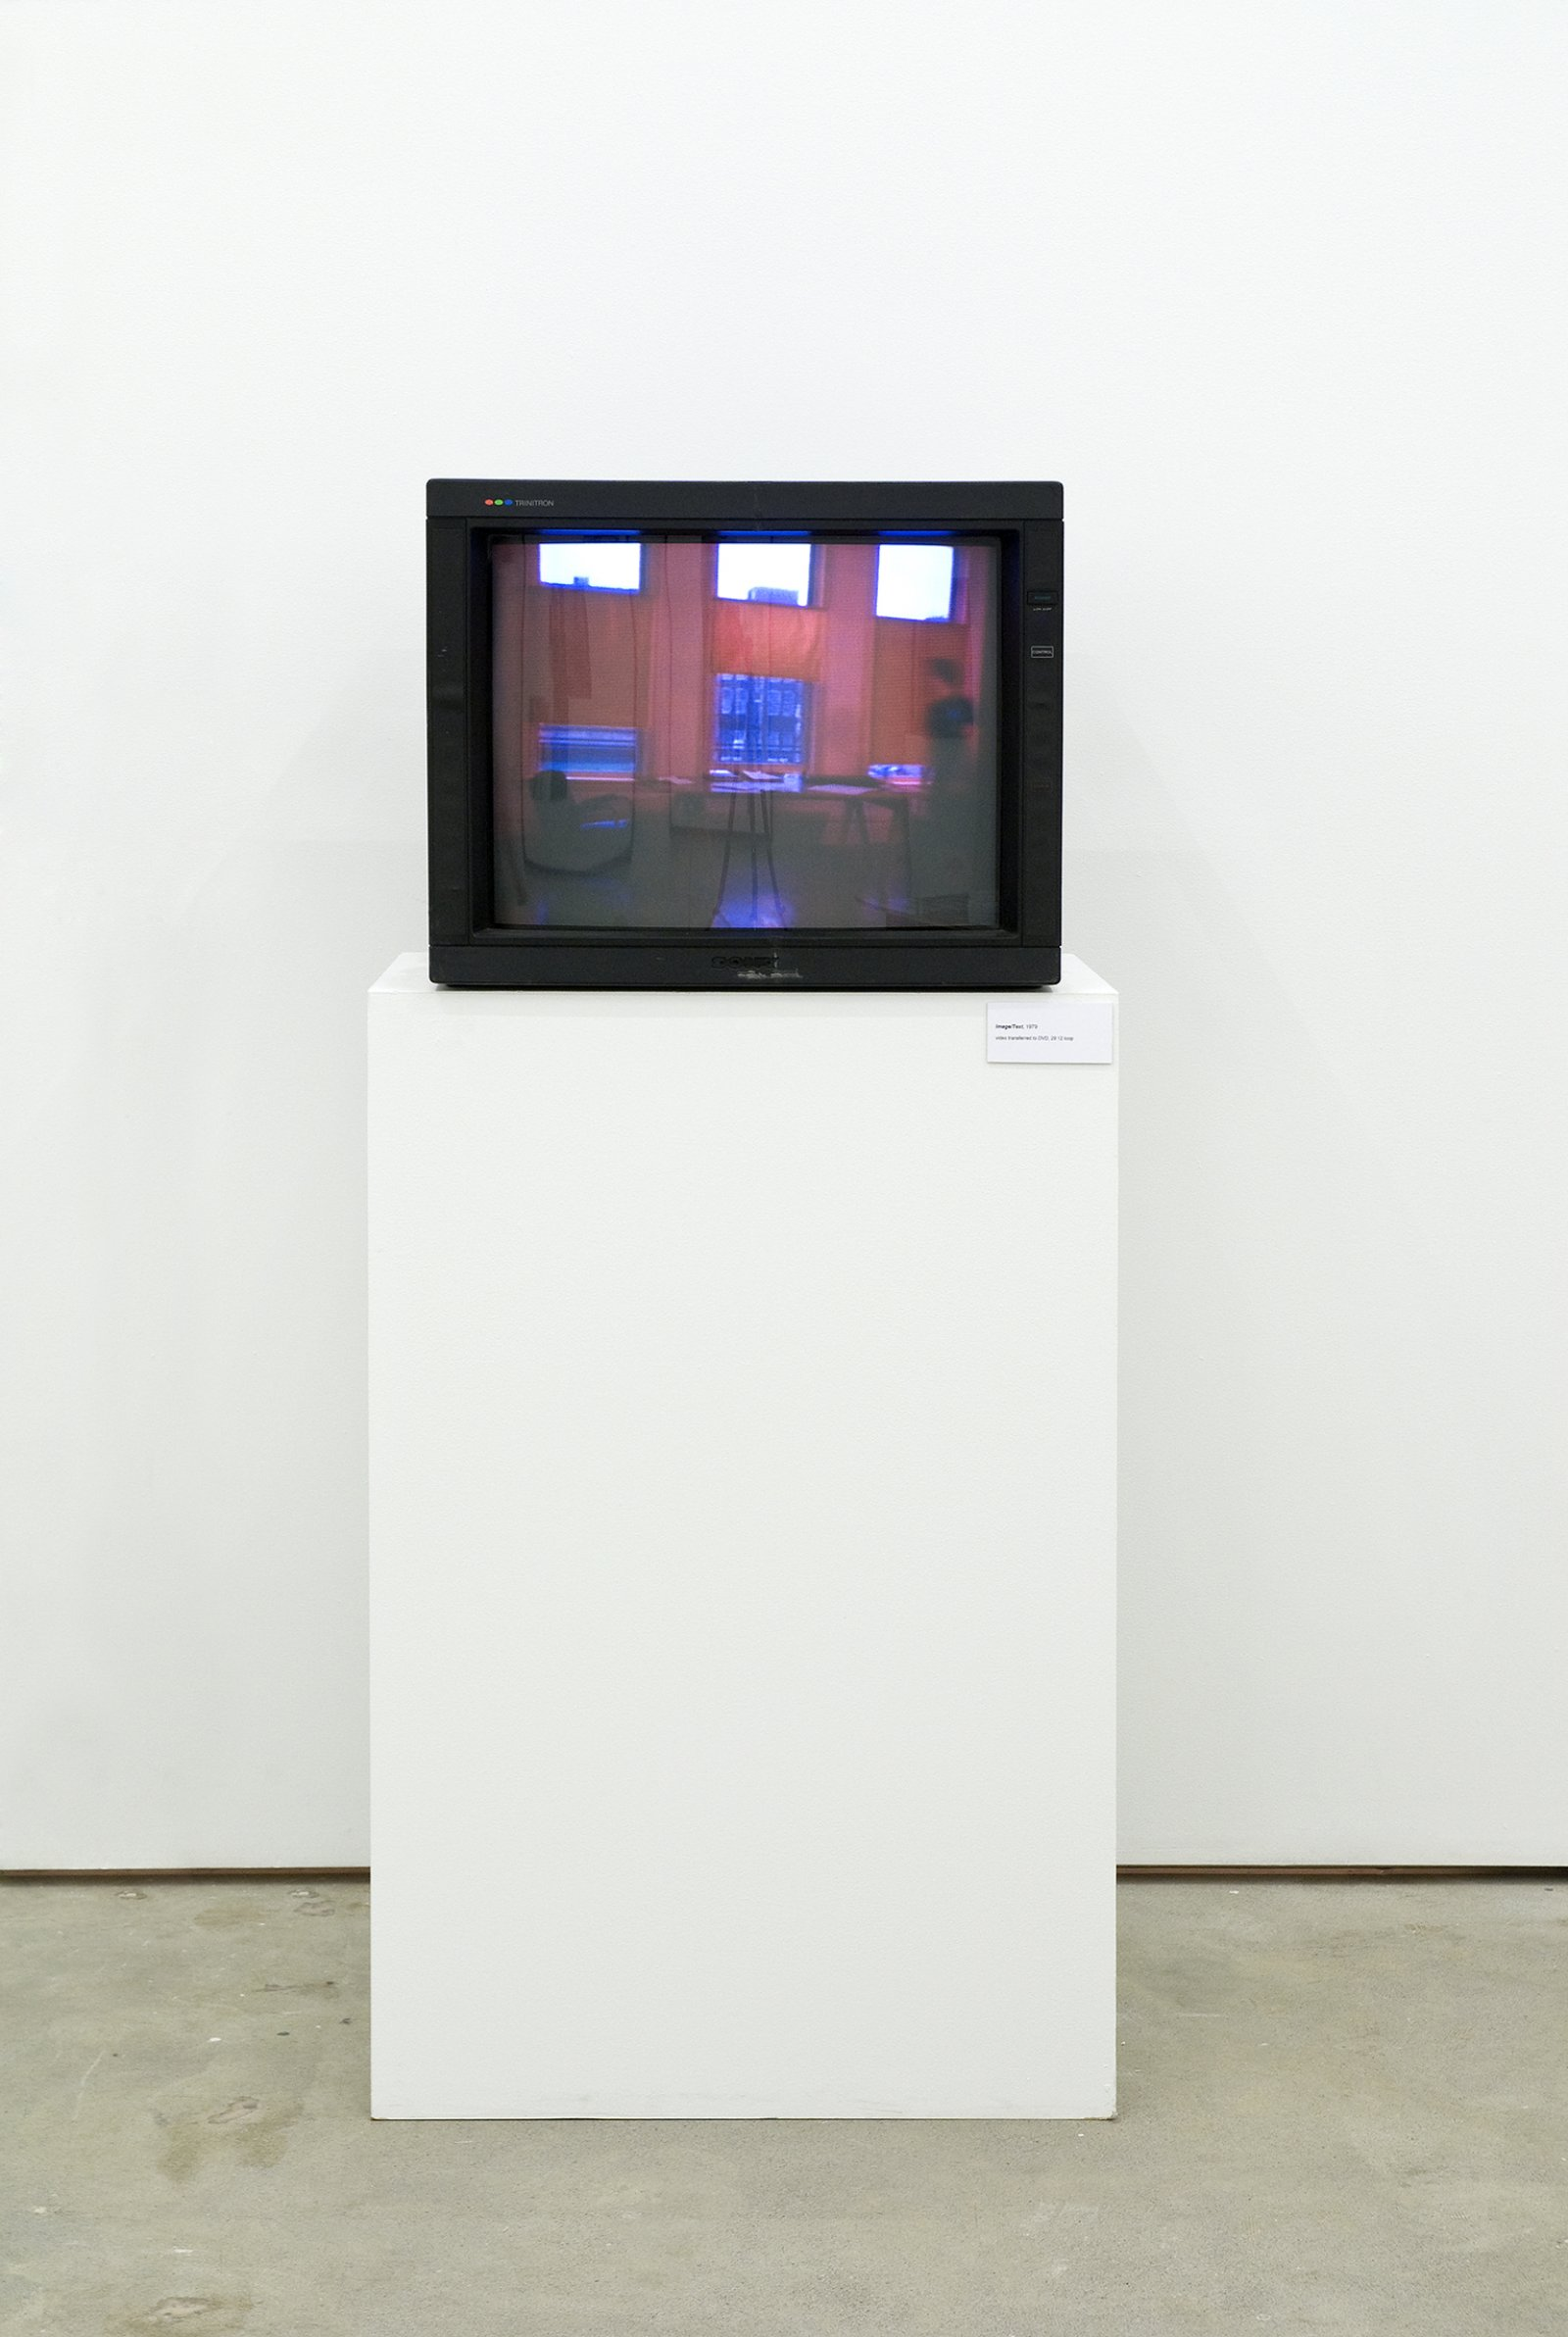 Ian Wallace, Image/Text, 1979, 3/4 inch video transferred to DVD, 29 minutes, 12 seconds looped by Ian Wallace